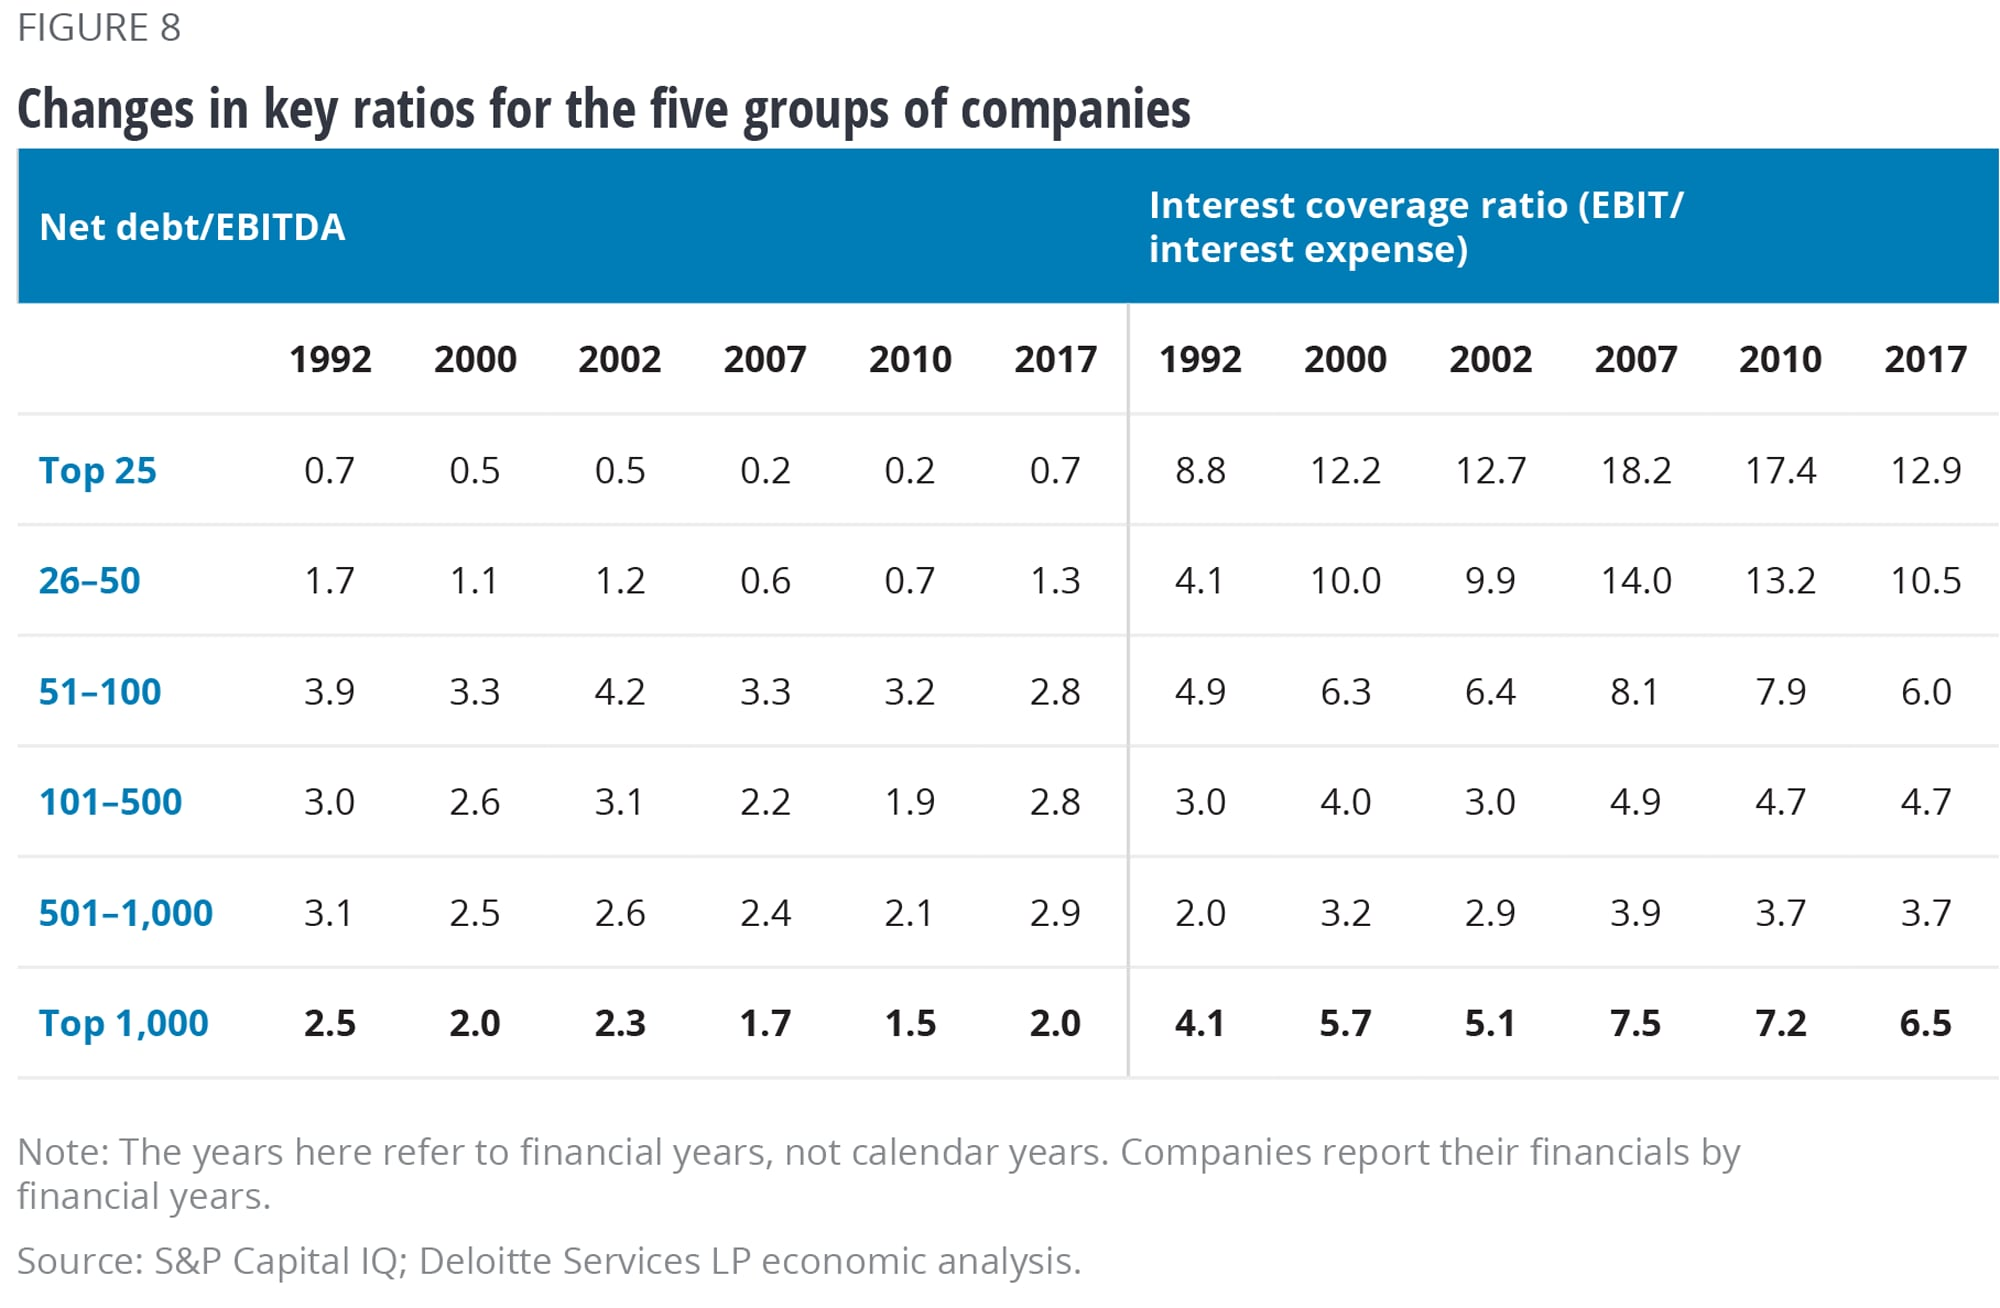 Changes in key ratios for the groups of companies